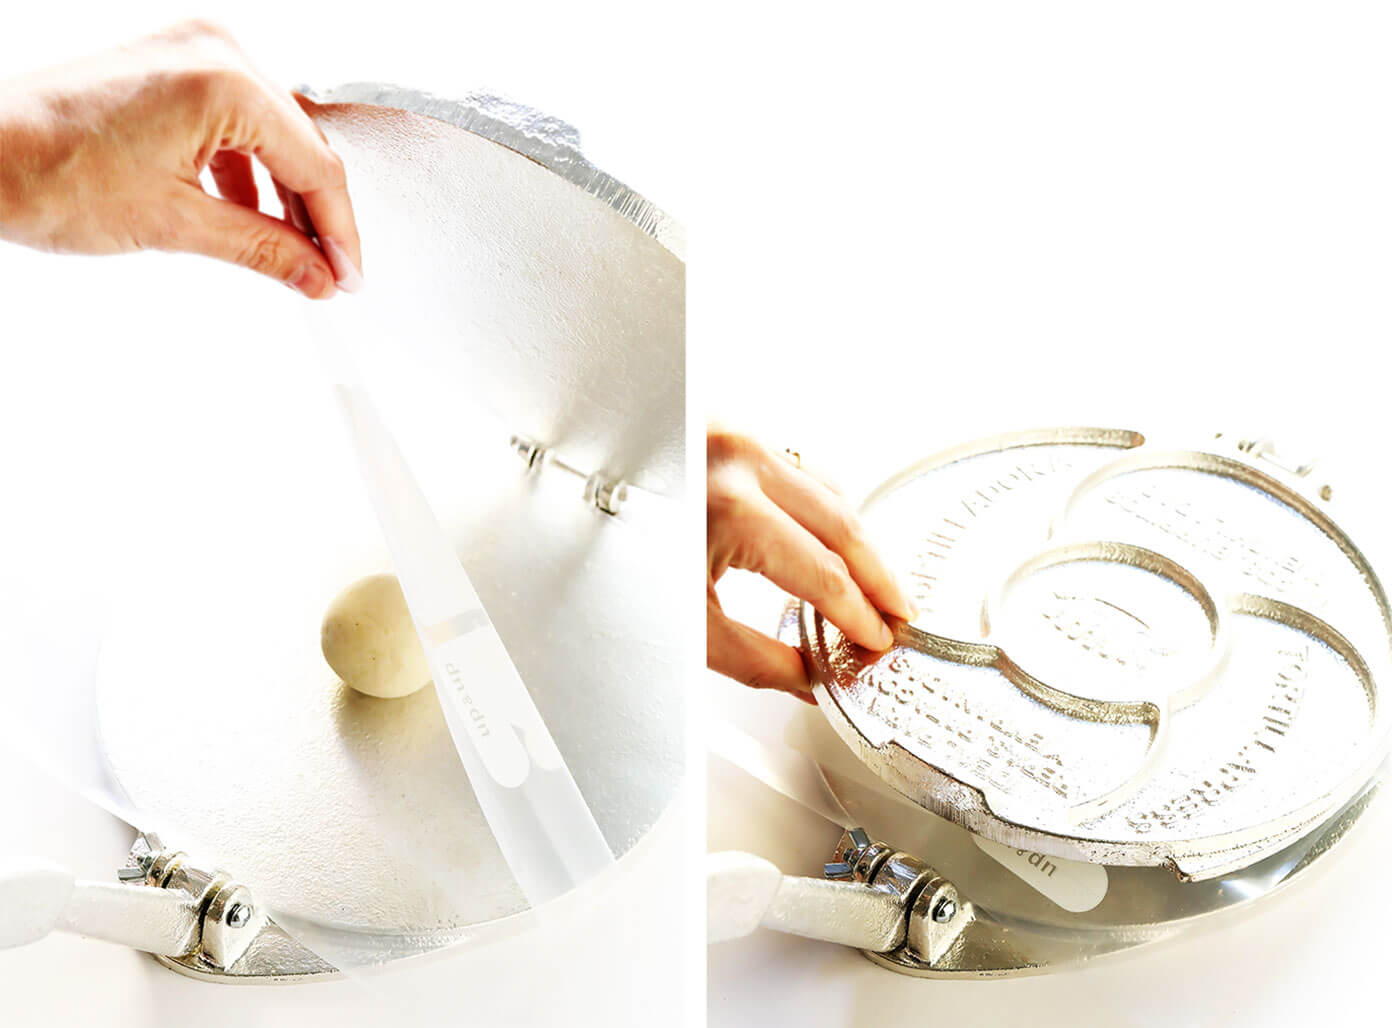 How To Use A Tortilla Press